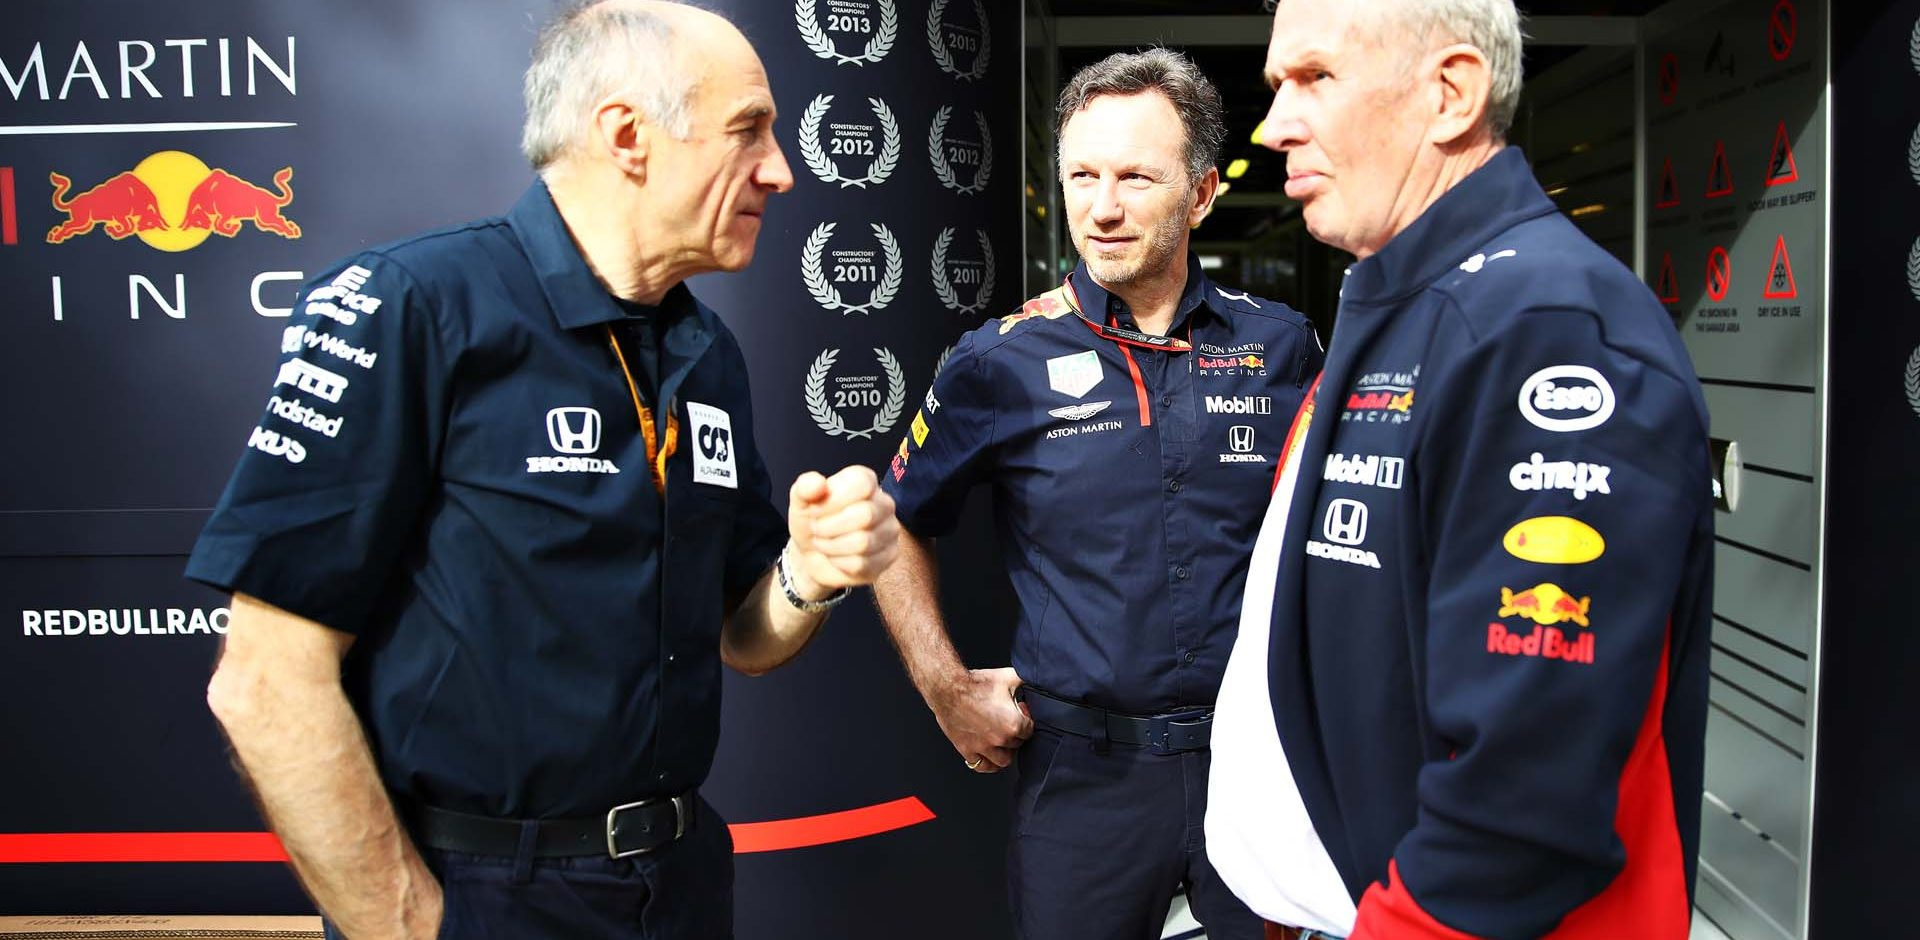 MELBOURNE, AUSTRALIA - MARCH 13: Red Bull Racing Team Principal Christian Horner, Scuderia AlphaTauri Team Principal Franz Tost and Red Bull Racing Team Consultant Dr Helmut Marko talk in the Paddock before practice for the F1 Grand Prix of Australia at Melbourne Grand Prix Circuit on March 13, 2020 in Melbourne, Australia. (Photo by Mark Thompson/Getty Images) // Getty Images / Red Bull Content Pool  // AP-23CT8GAMW1W11 // Usage for editorial use only //